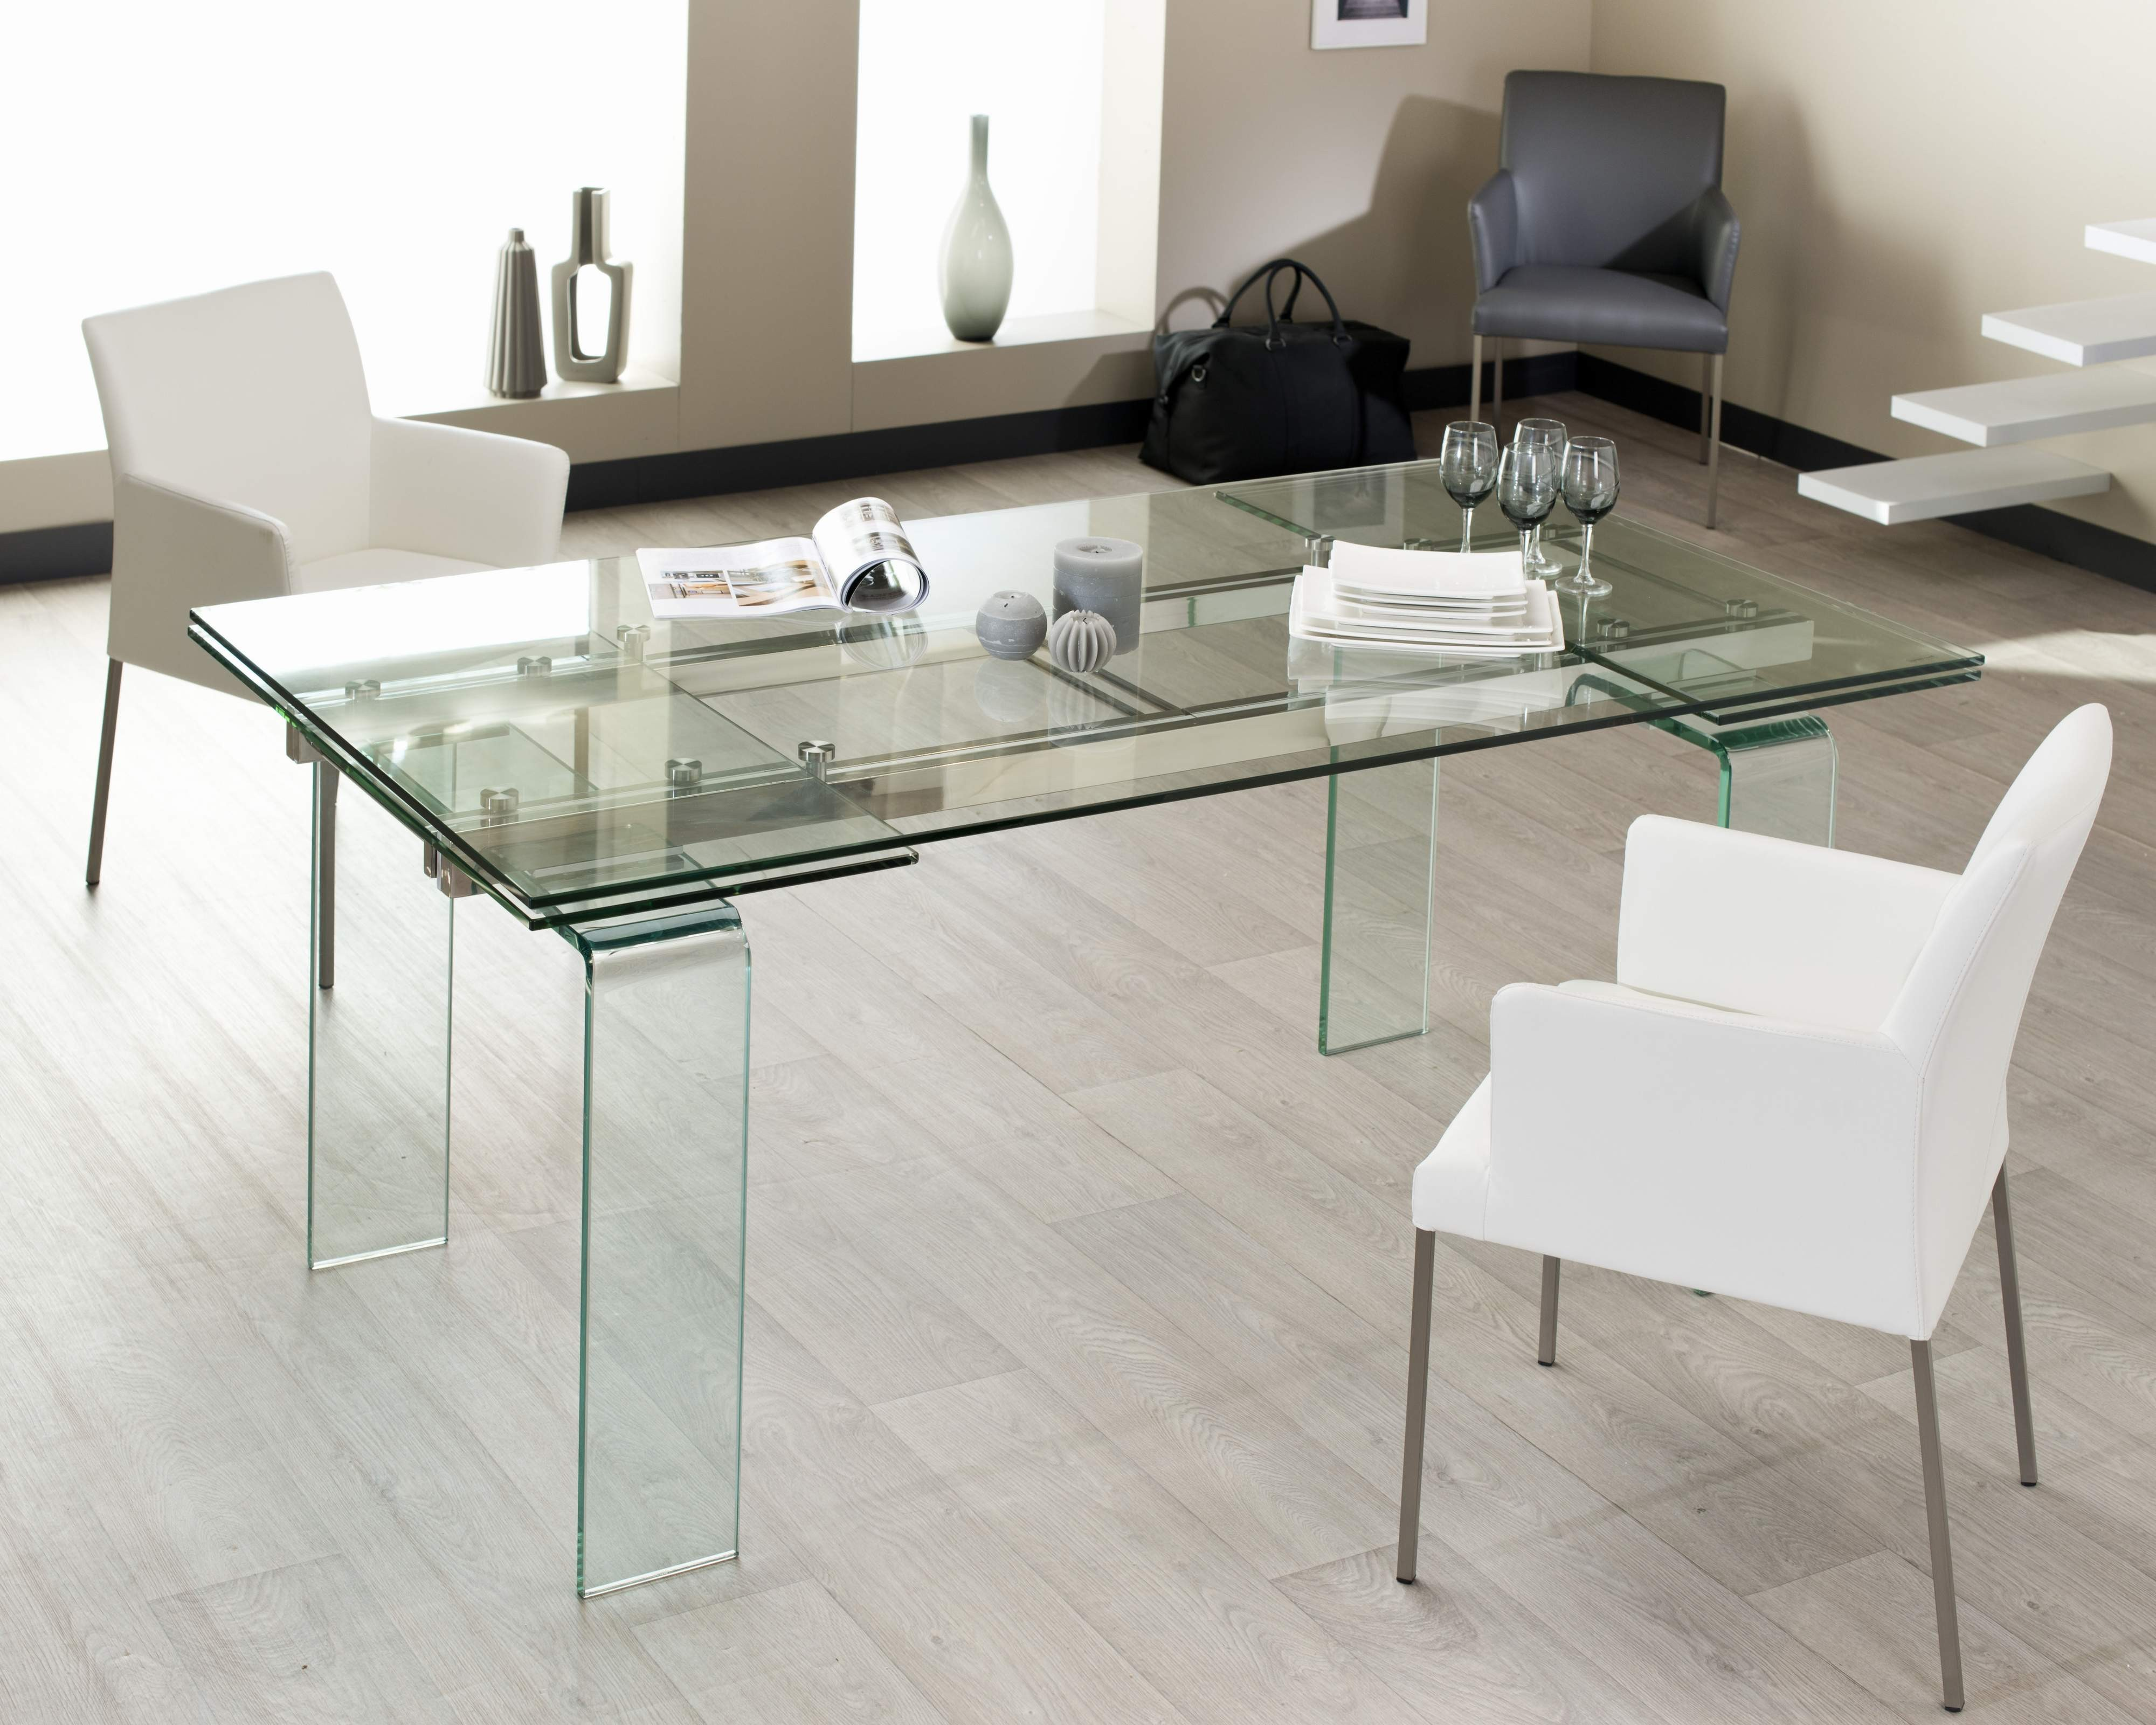 Table en verre salle a manger solutions pour la for Table italienne en verre